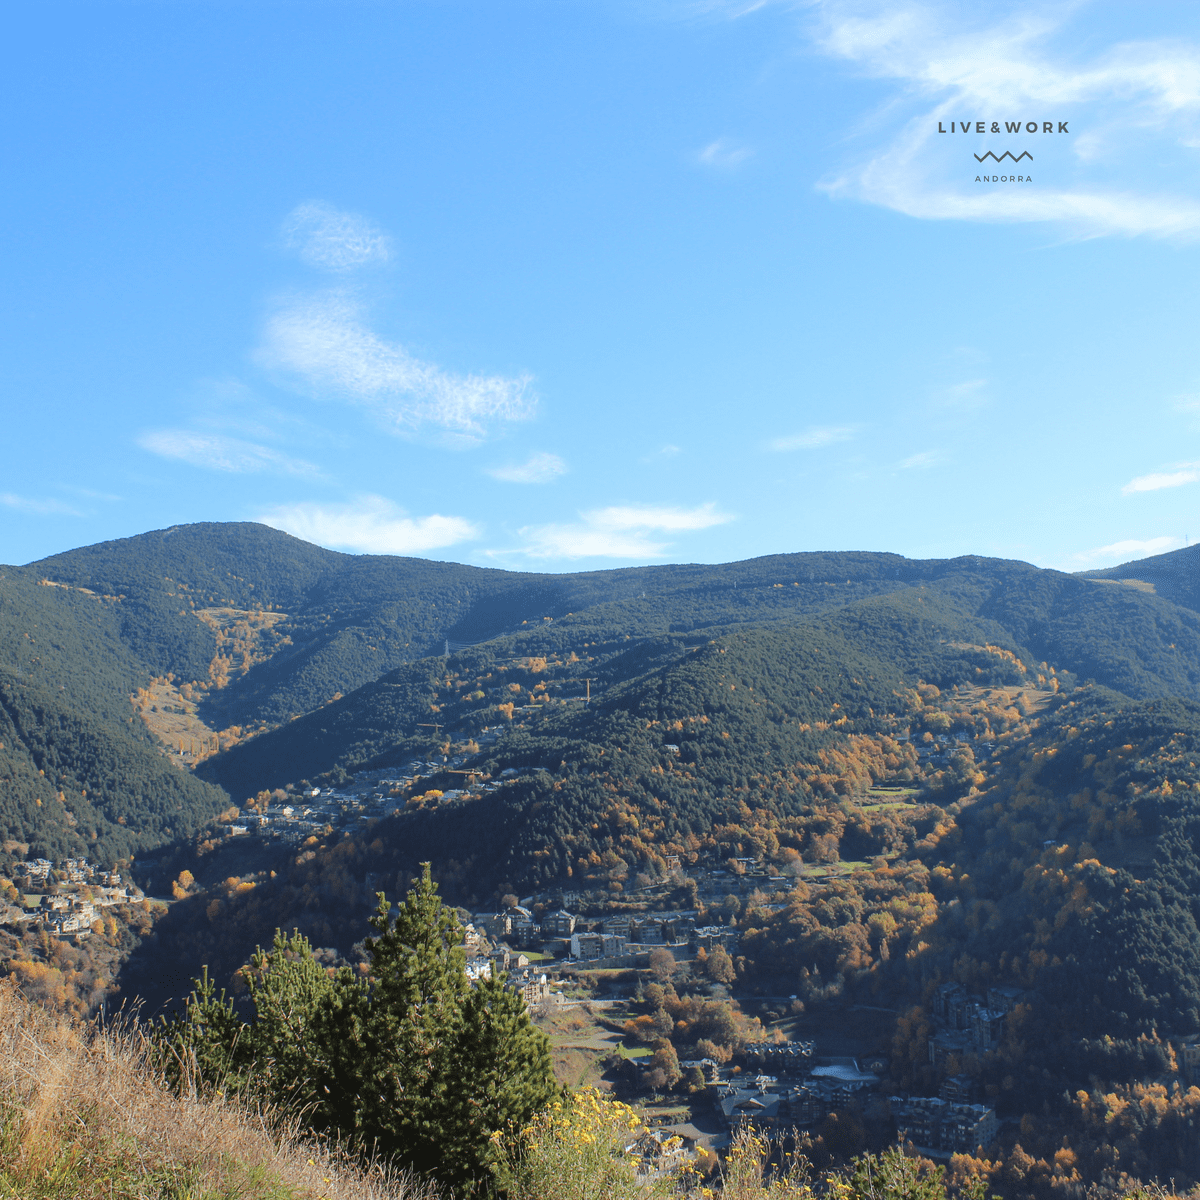 Have you ever thought of living in Andorra? Live & Work in Andorra shares everything you need to know about this beautiful country.